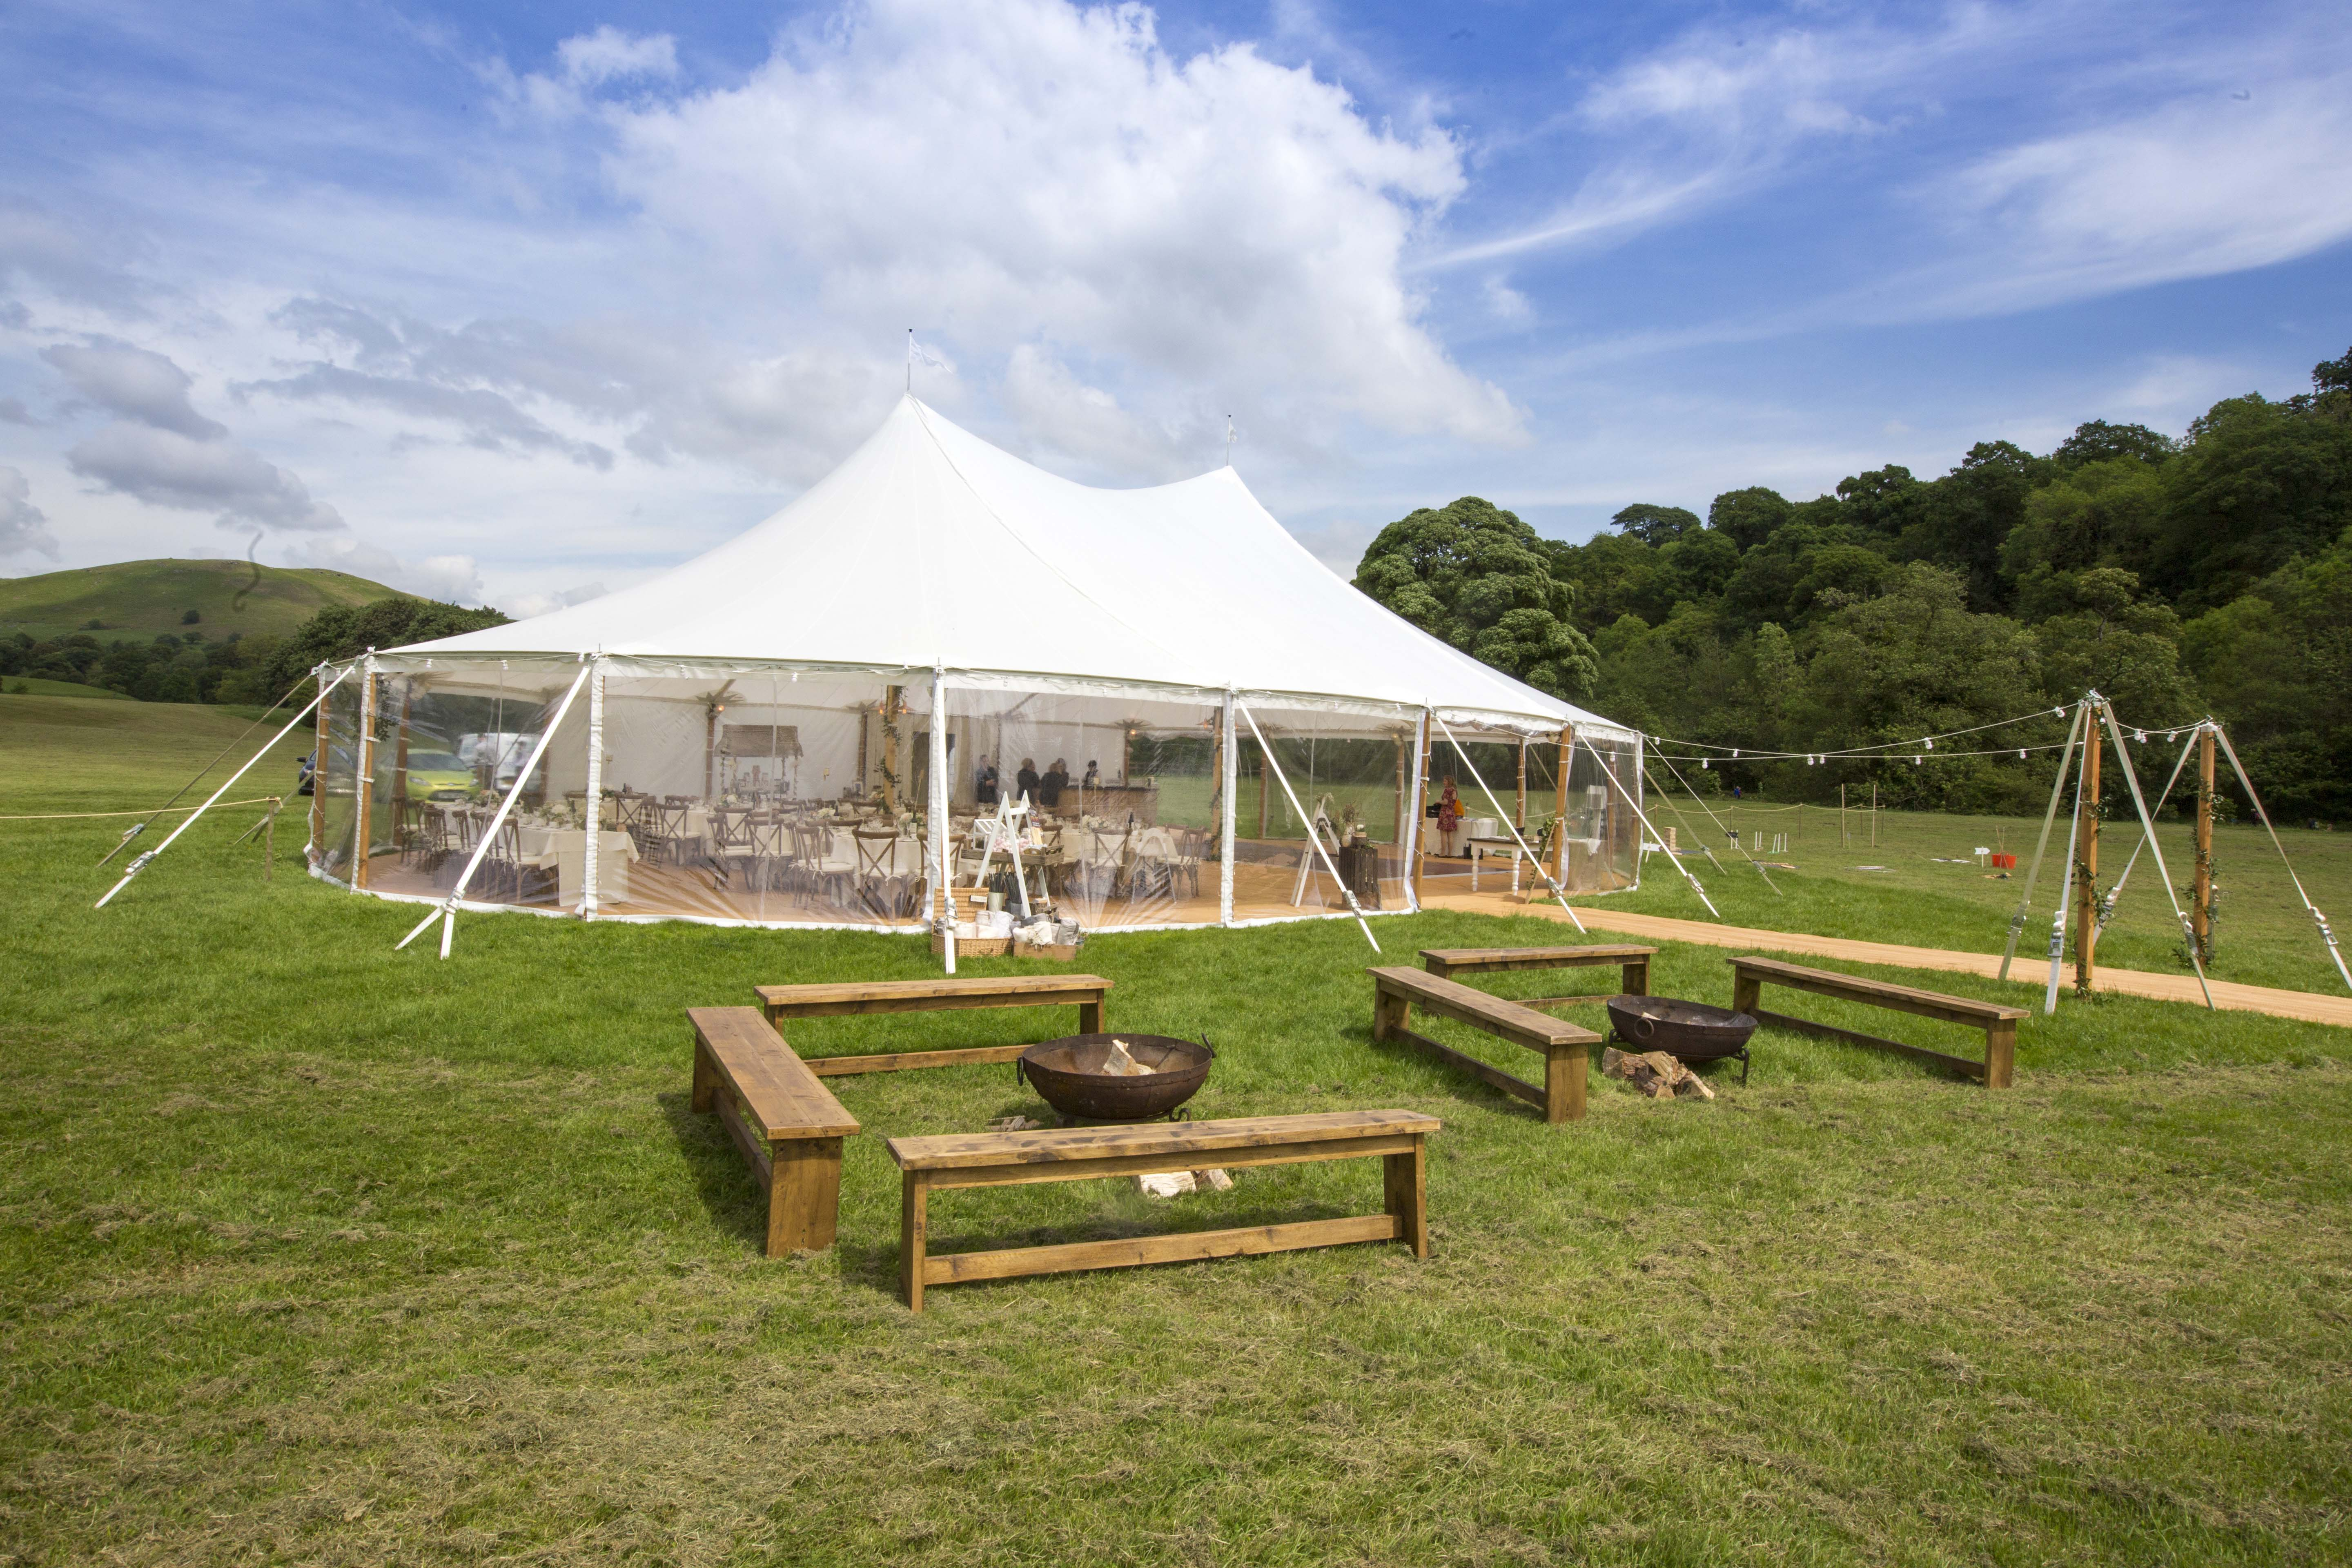 Fire pits - a popular choice for evening reception seating areas